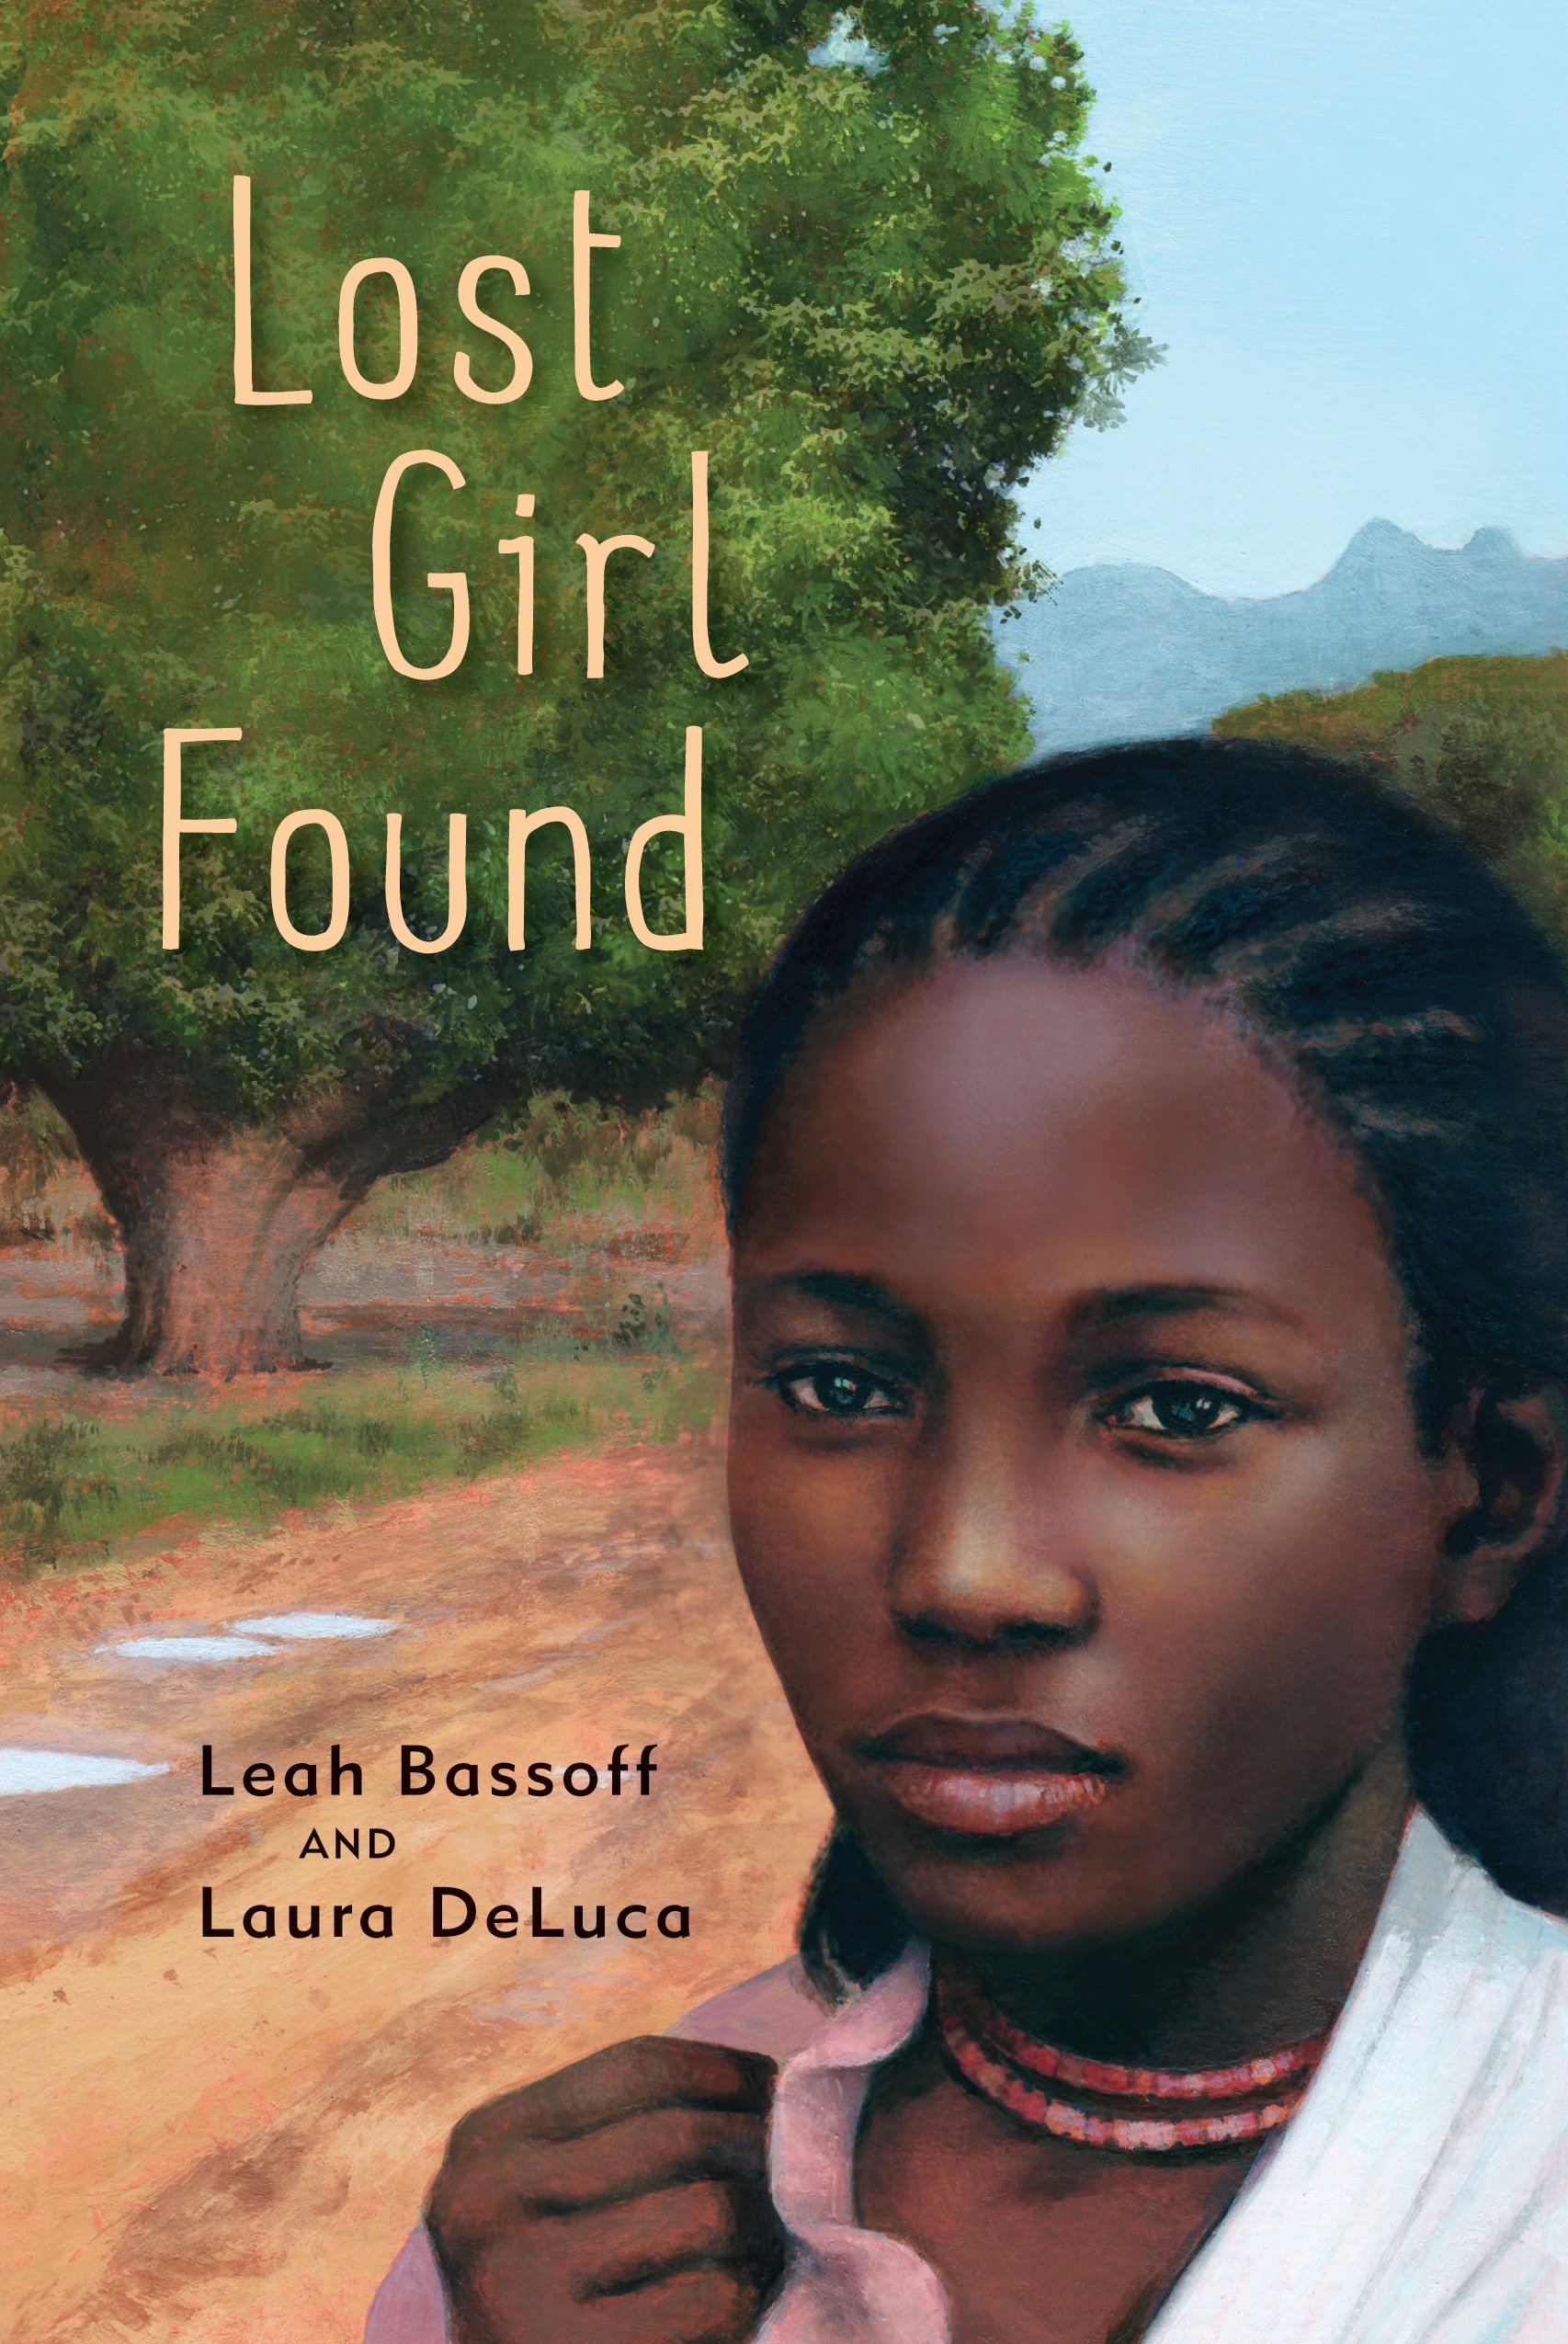 Author Leah Bassoff was once